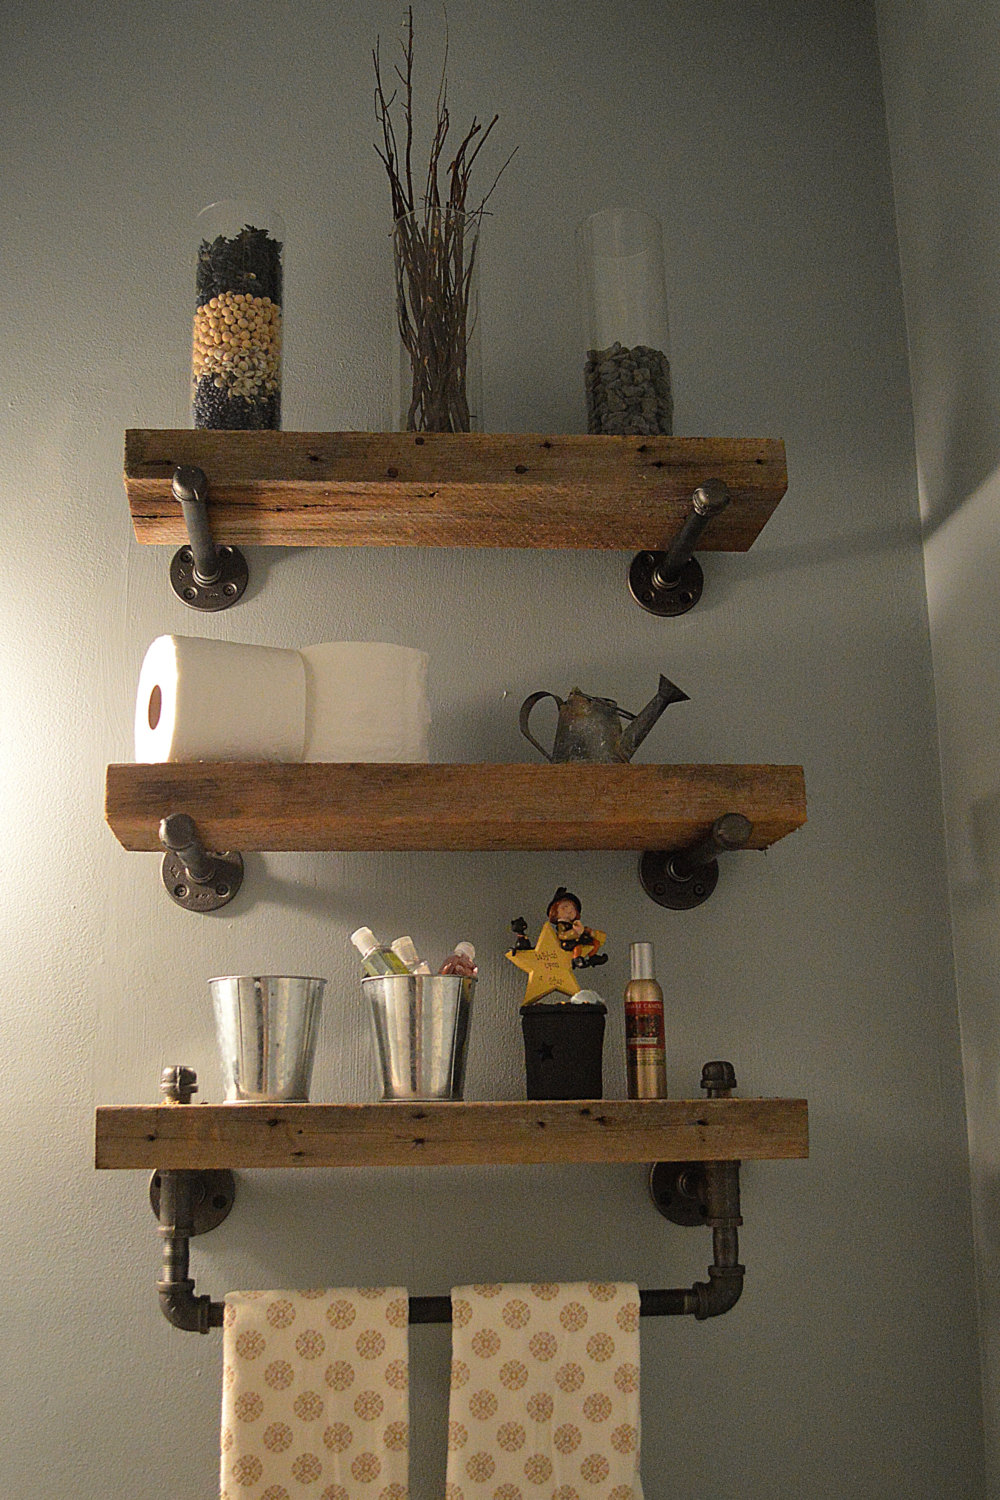 Rustic Bathroom Shelf Decor Ideas